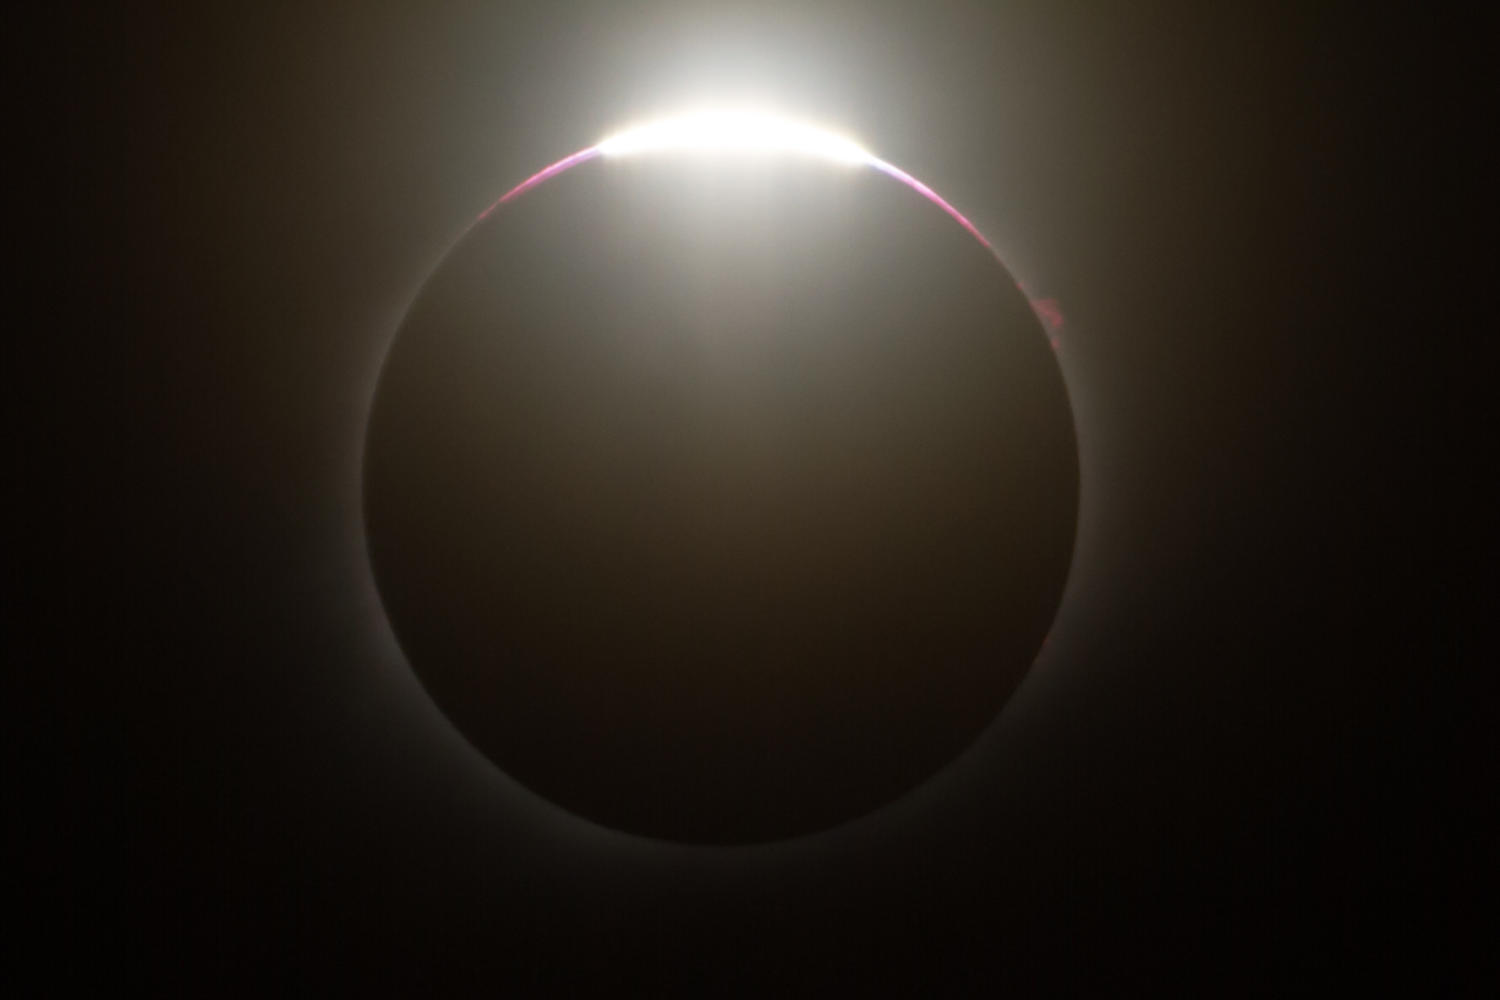 The last portion of the sun is exposed before the eclipse reaches complete totality.